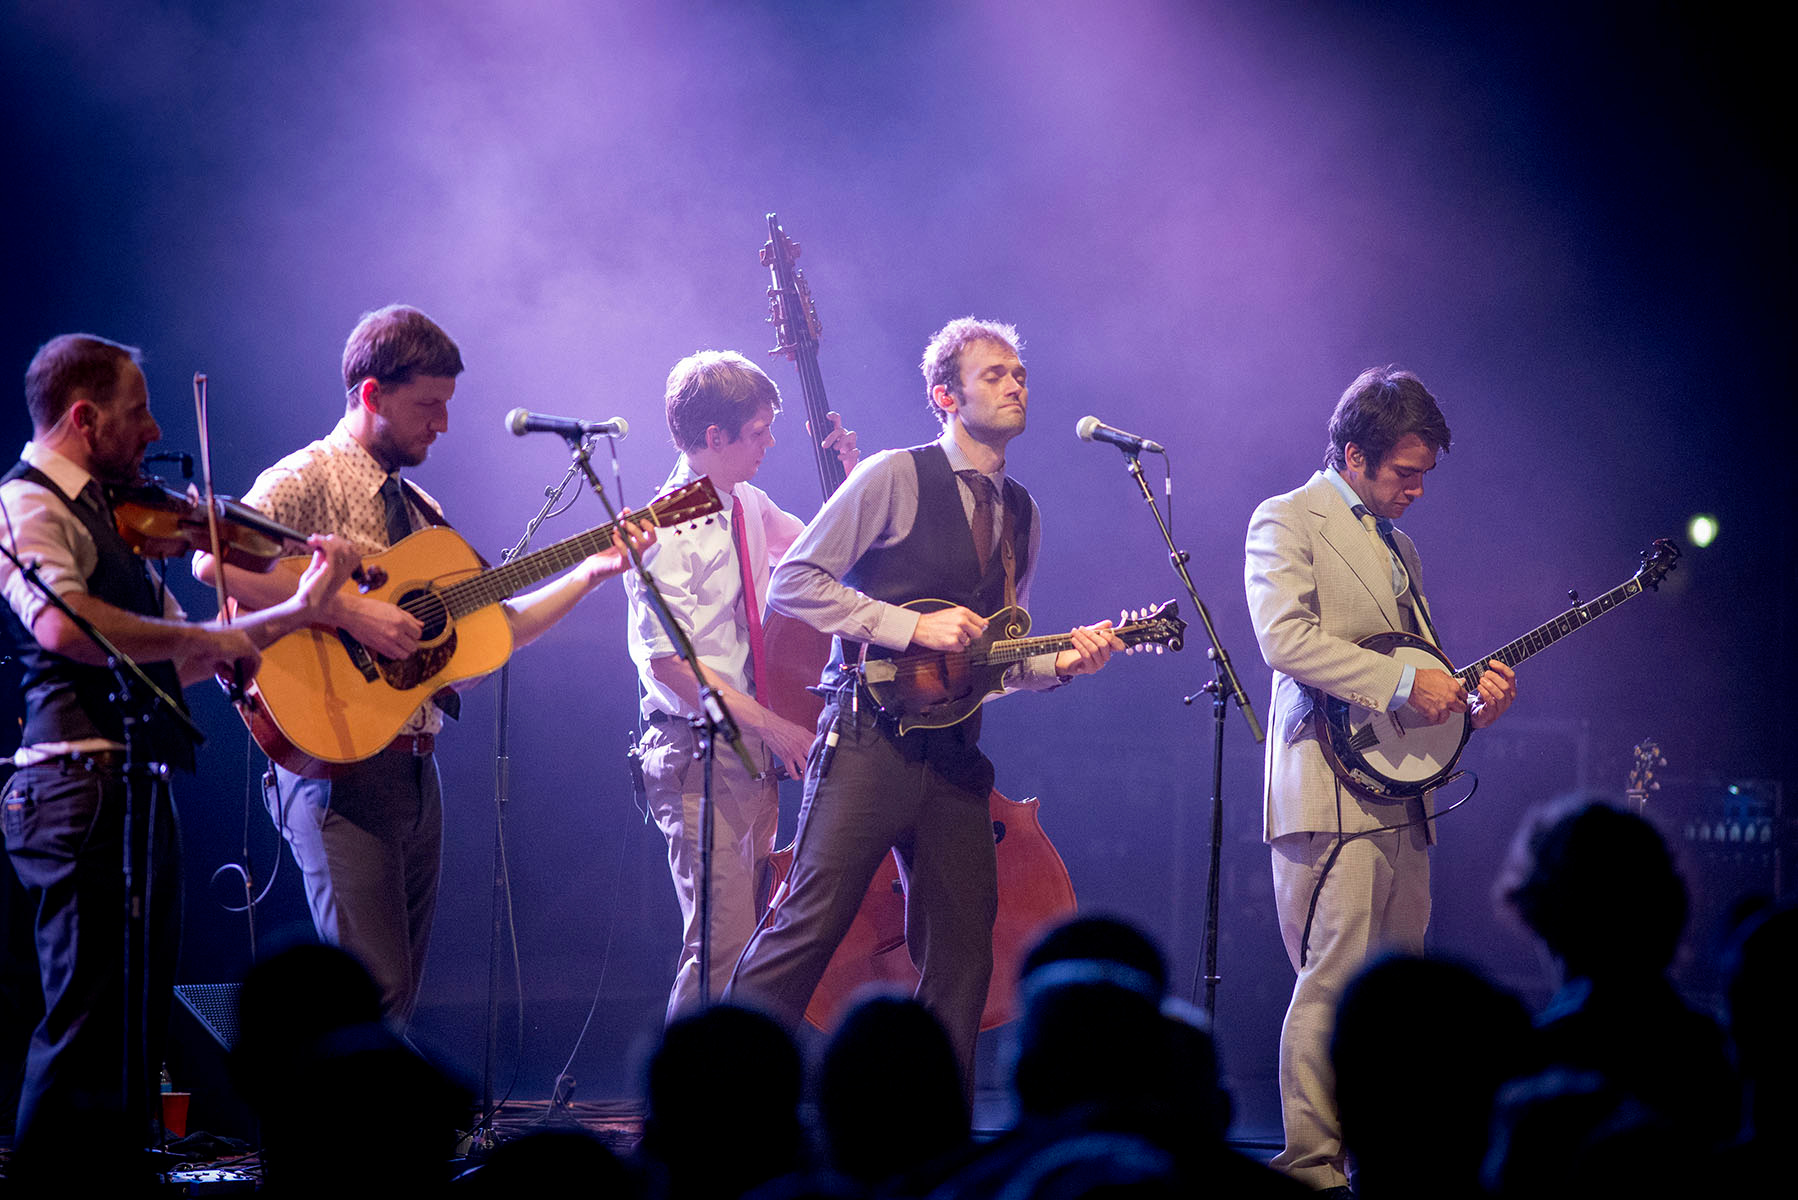 https://upload.wikimedia.org/wikipedia/commons/e/e6/Punch_Brothers_Julie_Macie.jpg